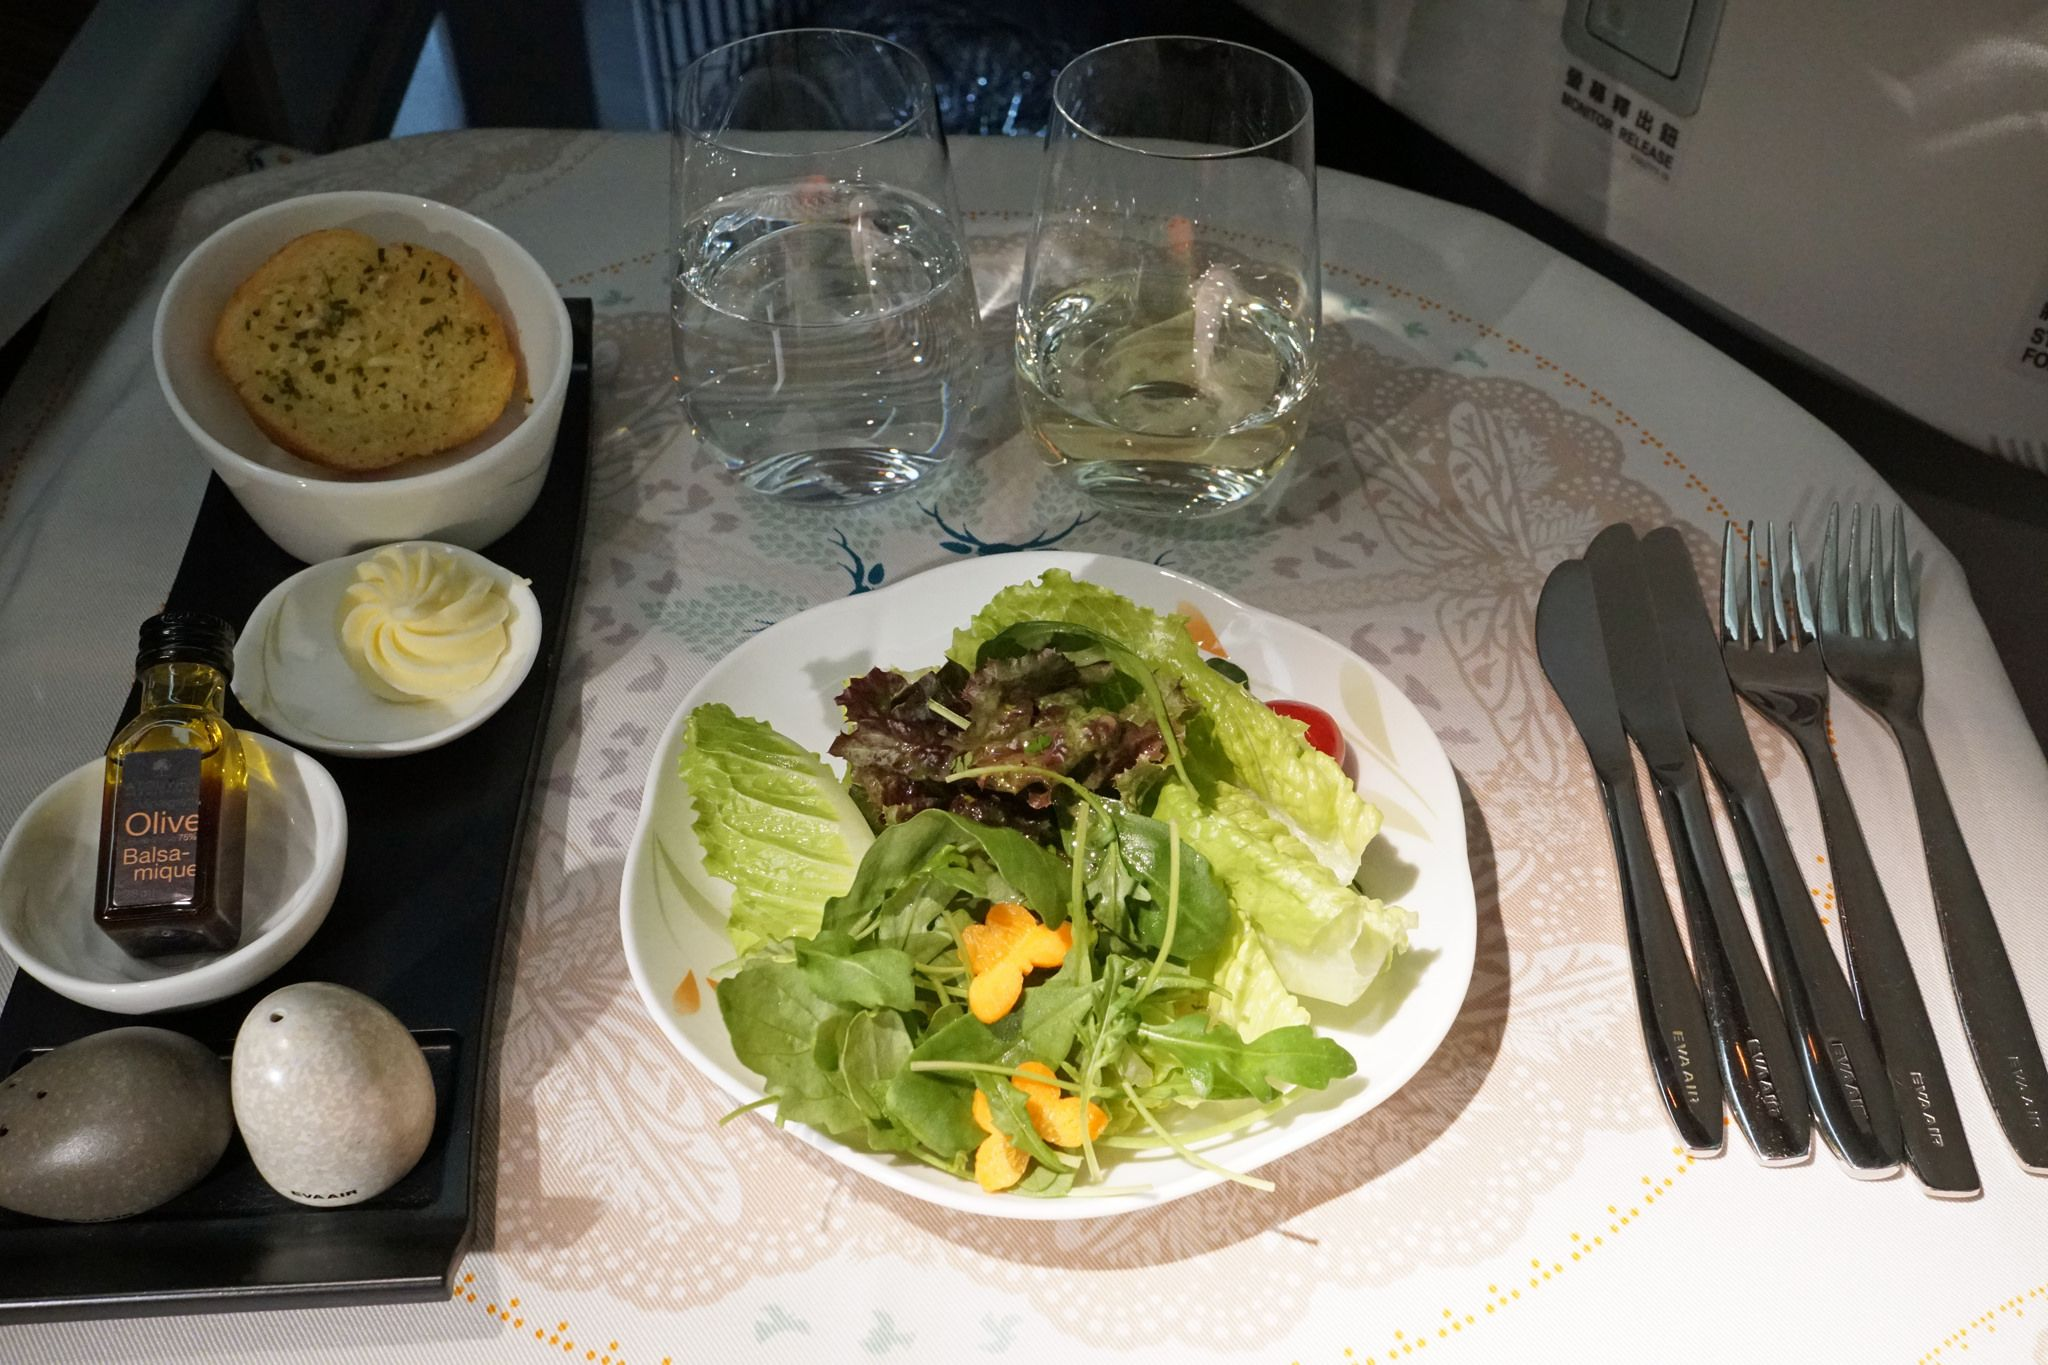 EVA Air Meal in 2020 Meals, Dinner, Salad recipes